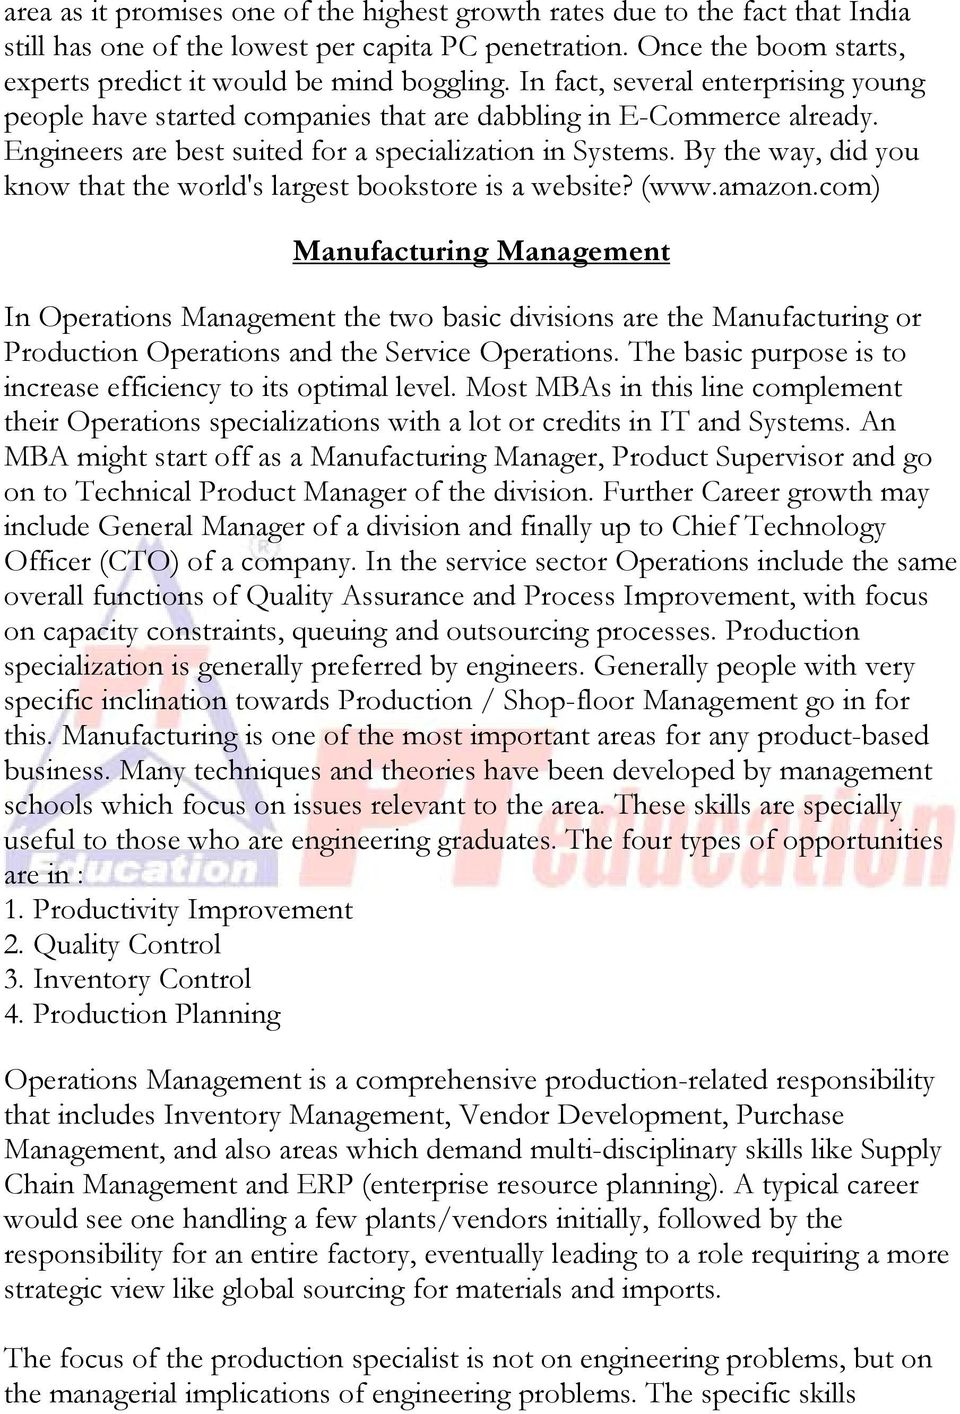 By the way, did you know that the world's largest bookstore is a website? (www.amazon.